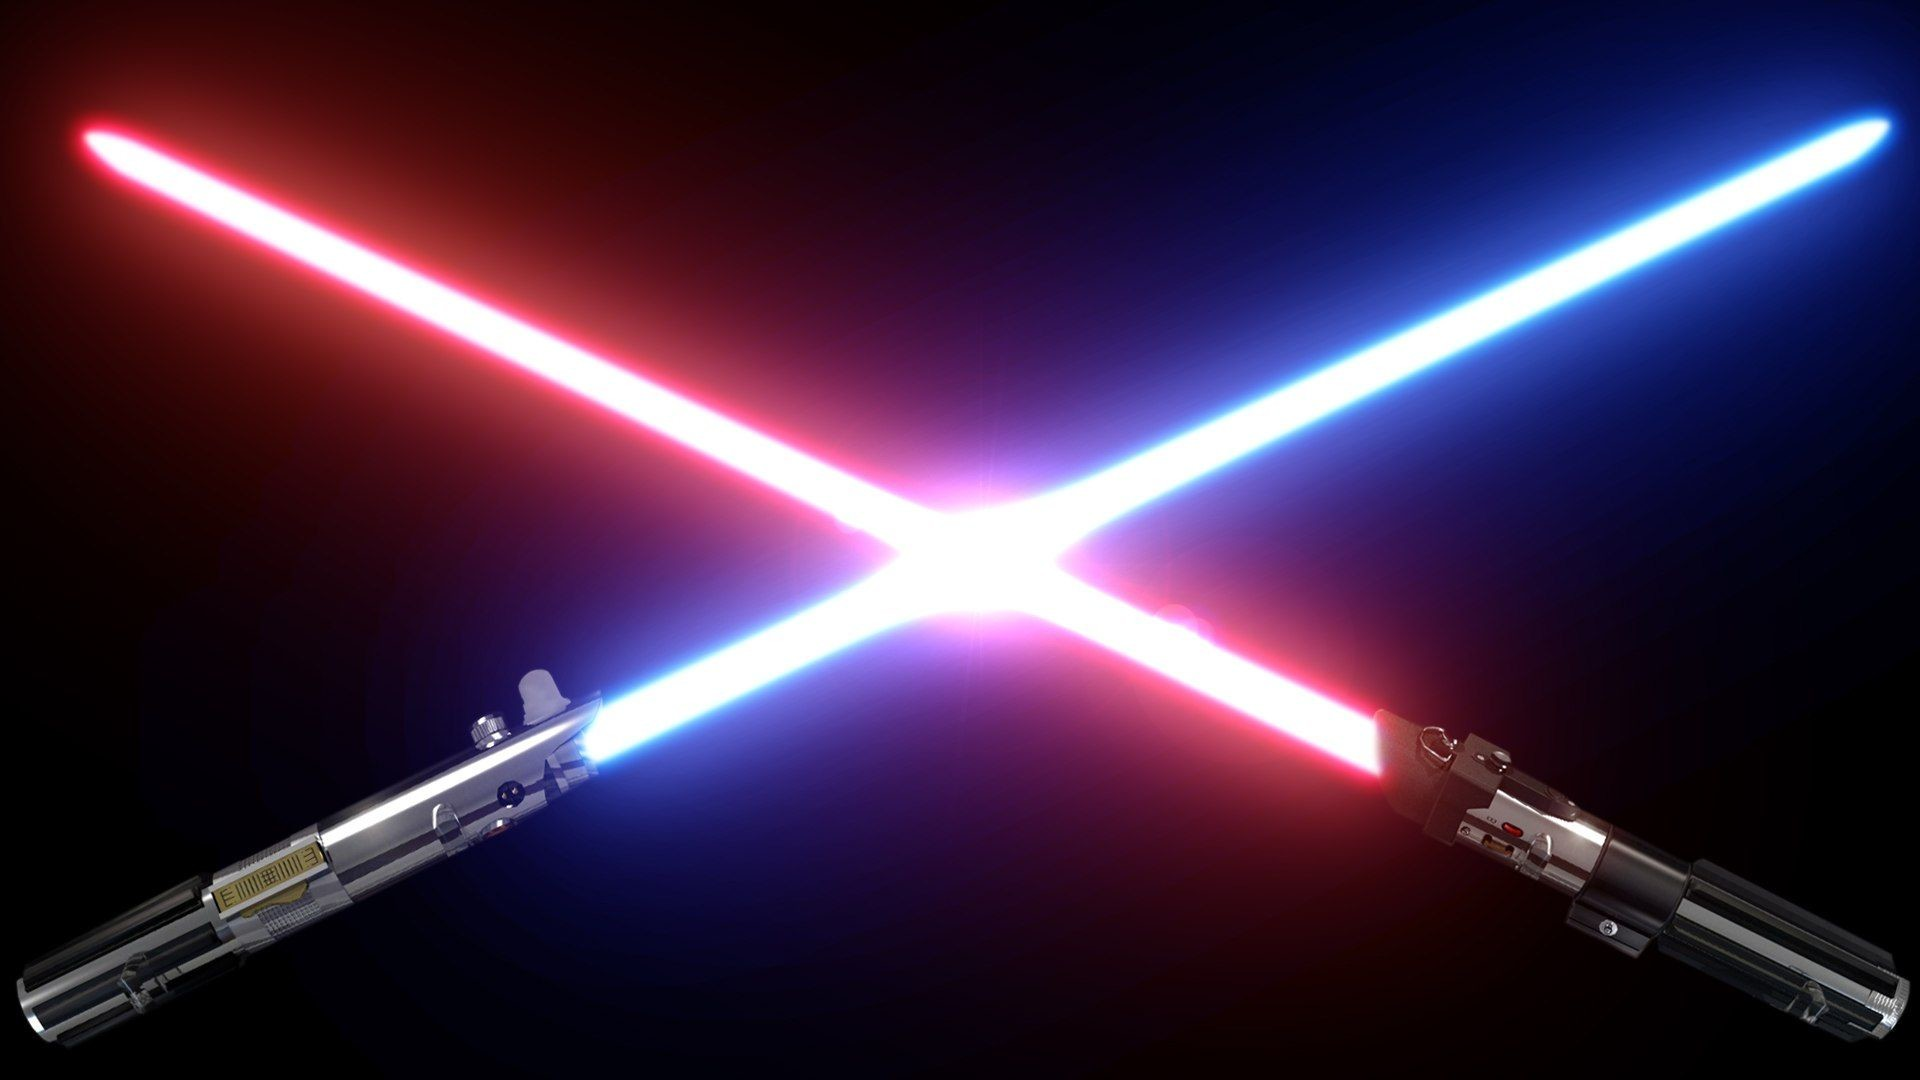 1920x1080 Red and blue lightsaber wallpaper  - (#34153) - High .